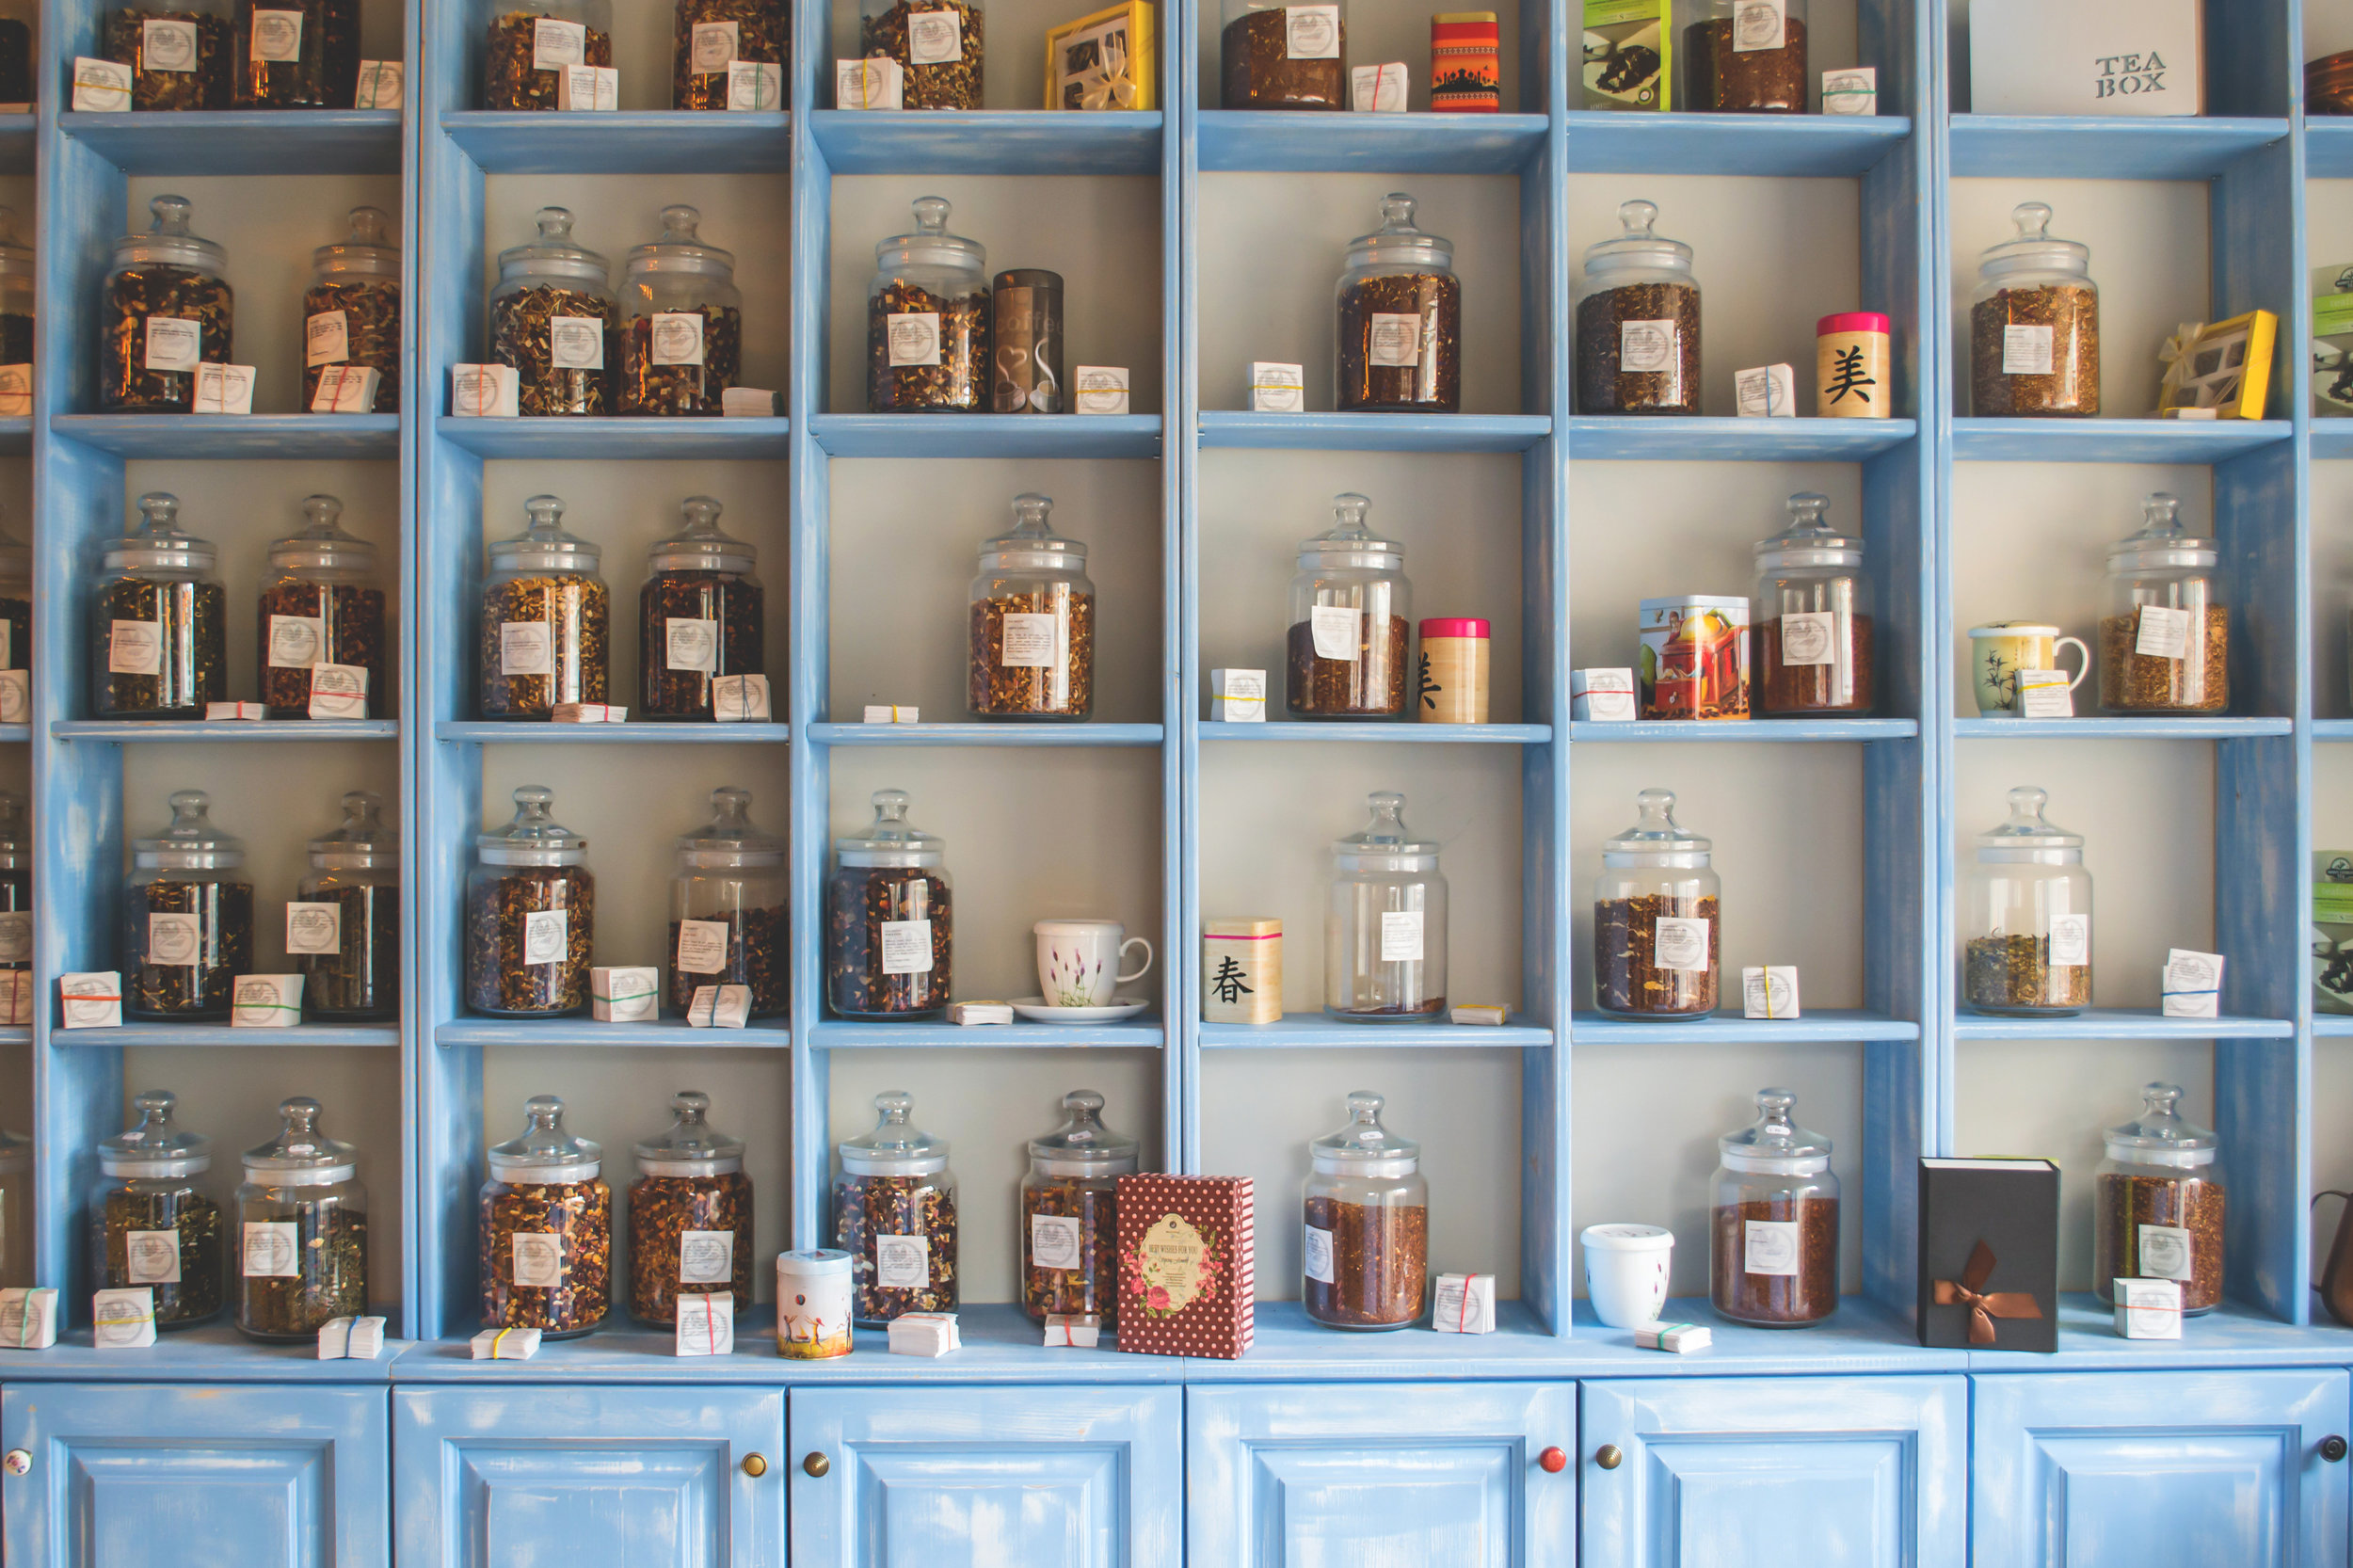 12 Ways to Properly Store Food - The Right Way